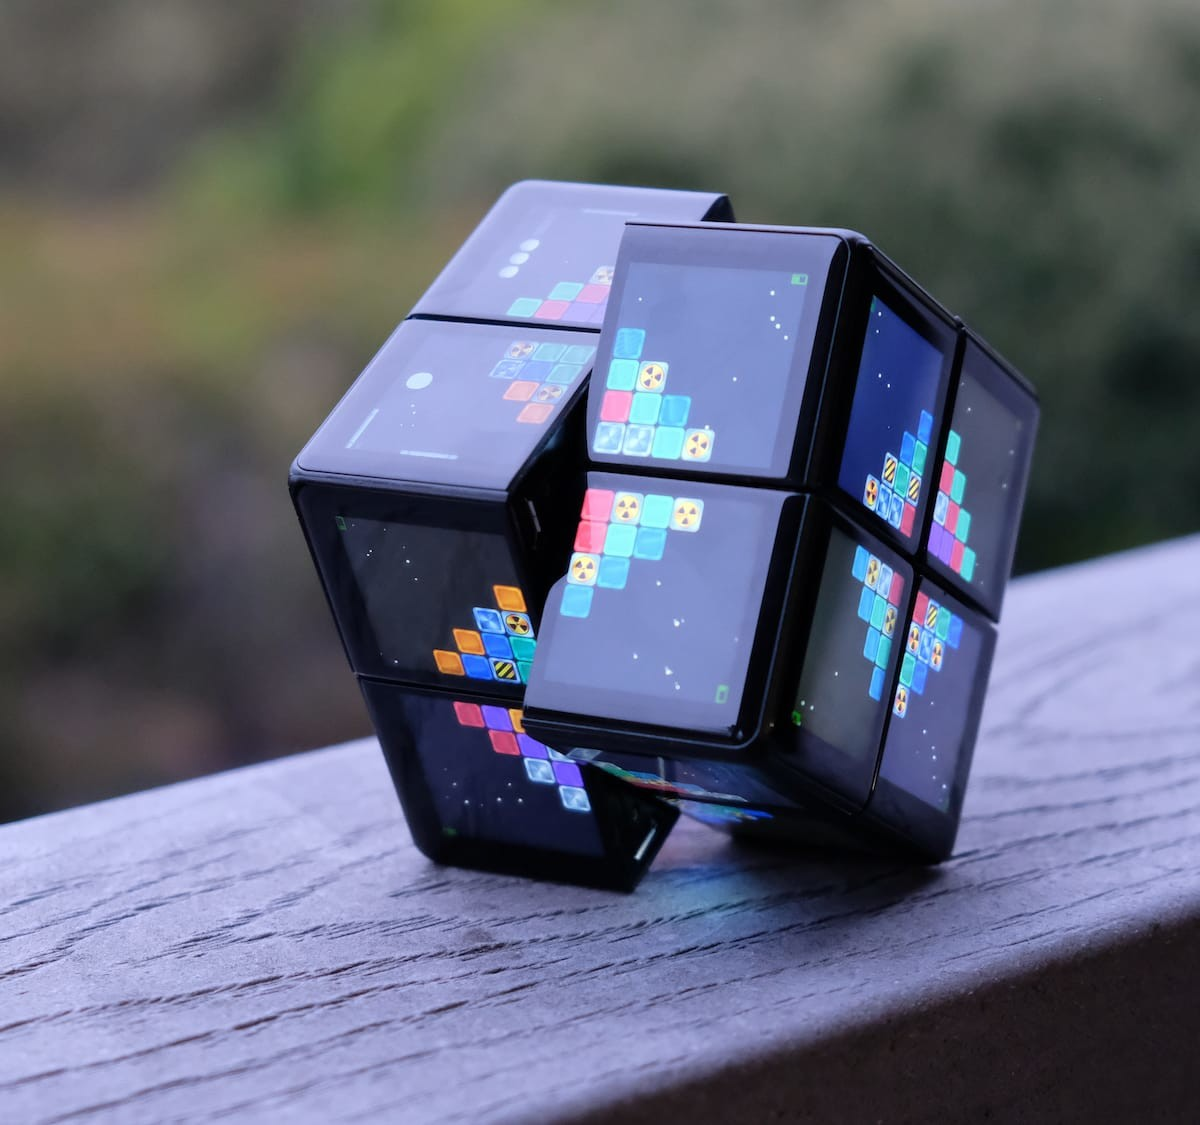 WOWCube System handheld game is a truly next-generation way to play